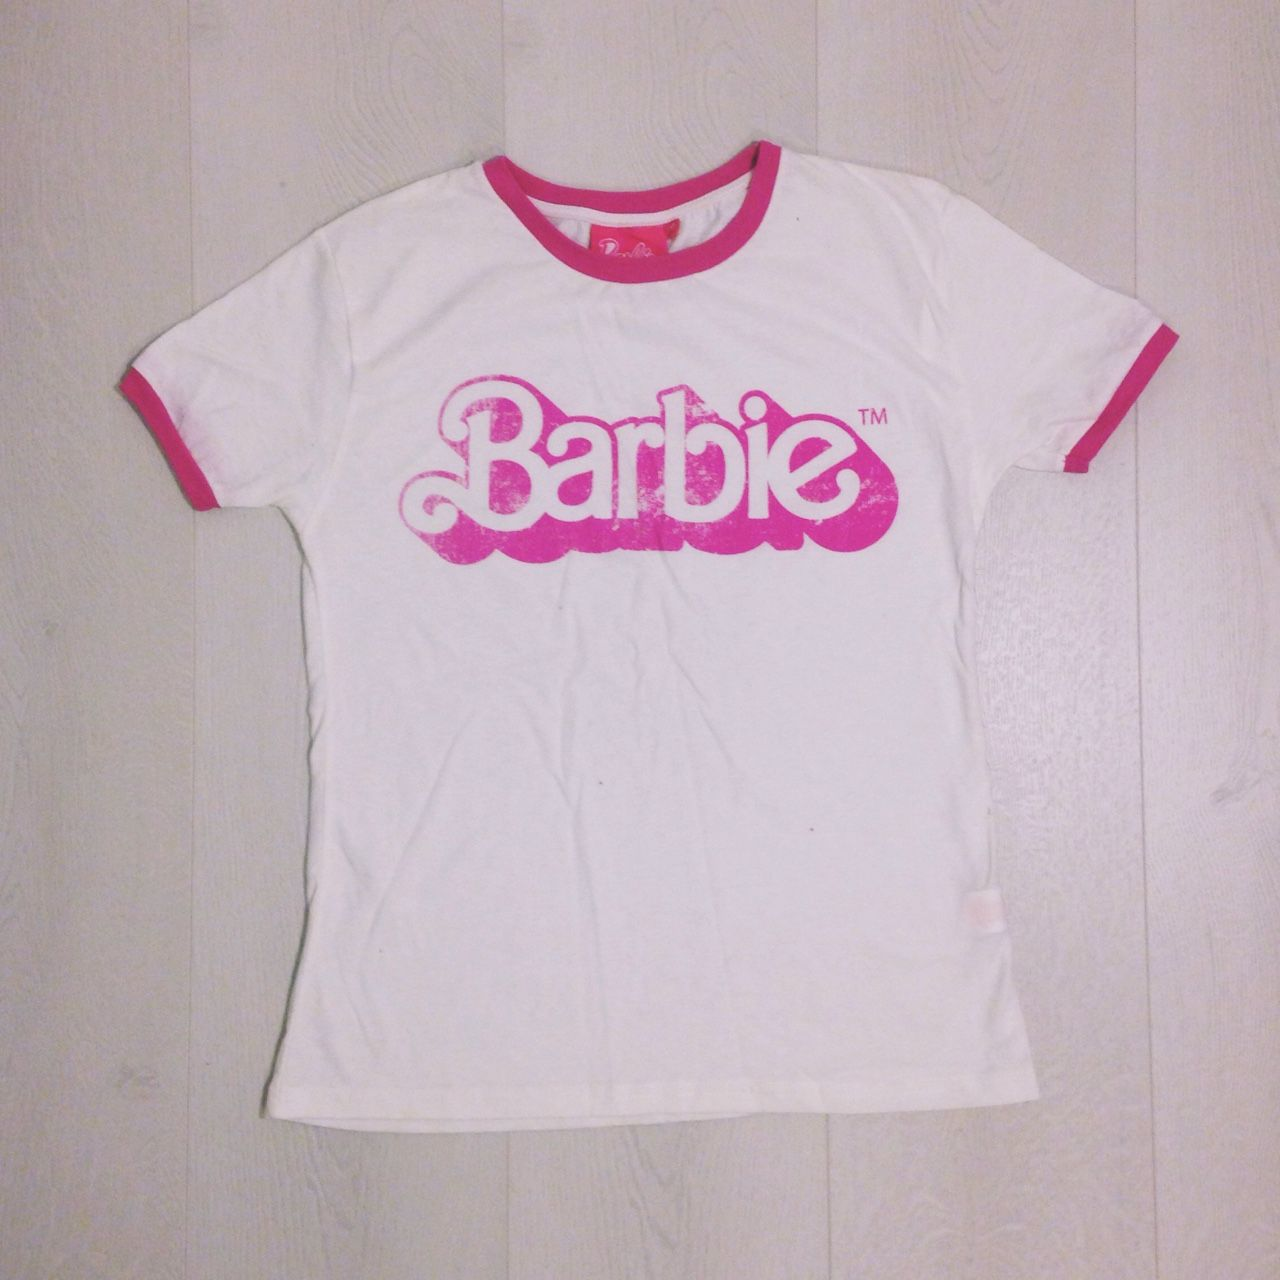 💘 BARBIE Tshirt 💘 super cute BARBIE tshirt, worn only once for a shoot 📷🦄 Size 10, great condition! #barbie #barbietshirt #tshirt #size10 #tops #size10tops #slogantshirt #slogantee (UK P&P only 99p!!)